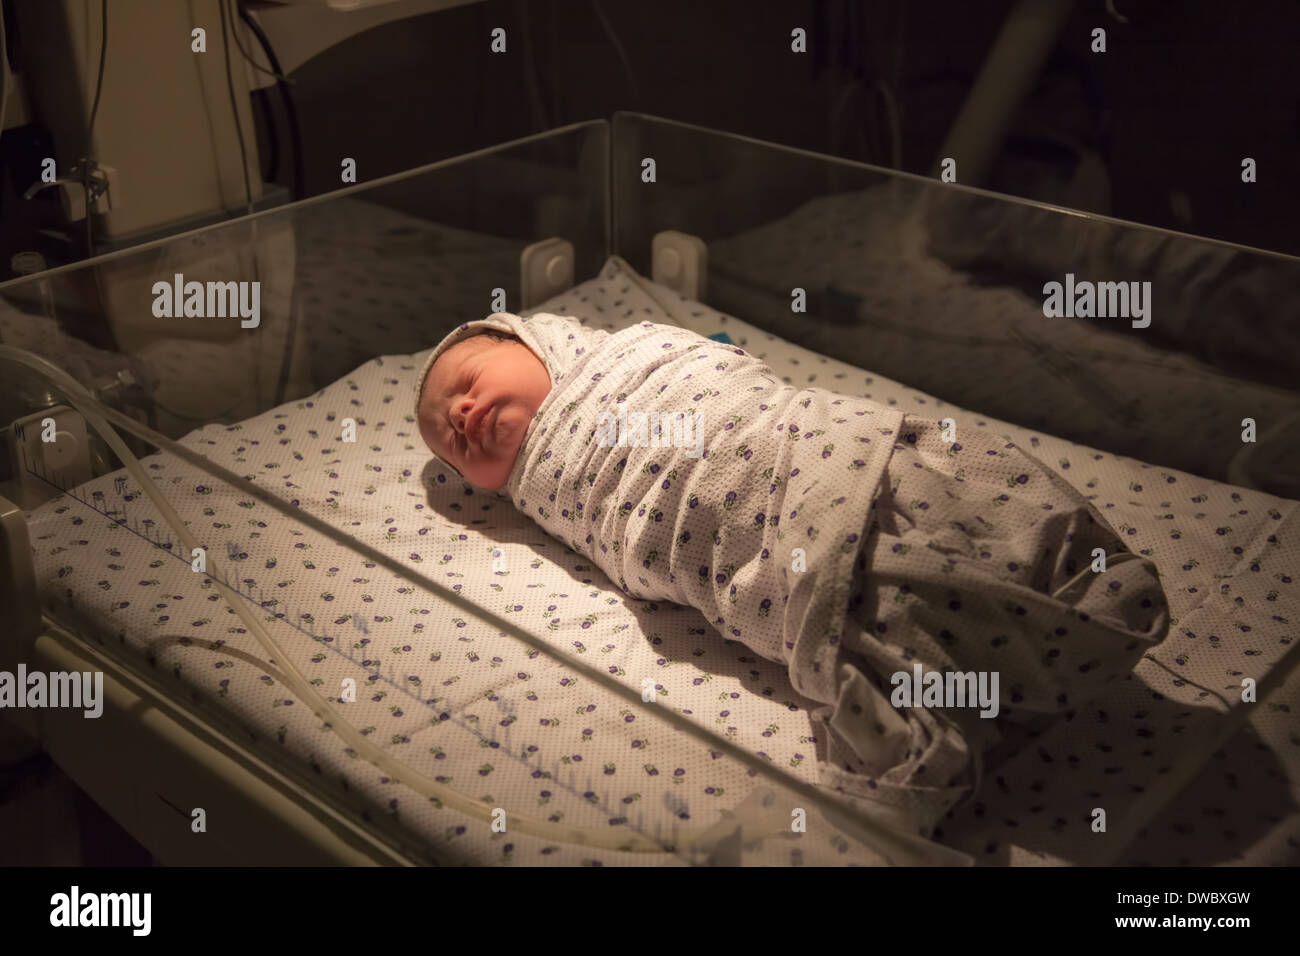 Just born baby boy at ICU in hospital. - Stock Image